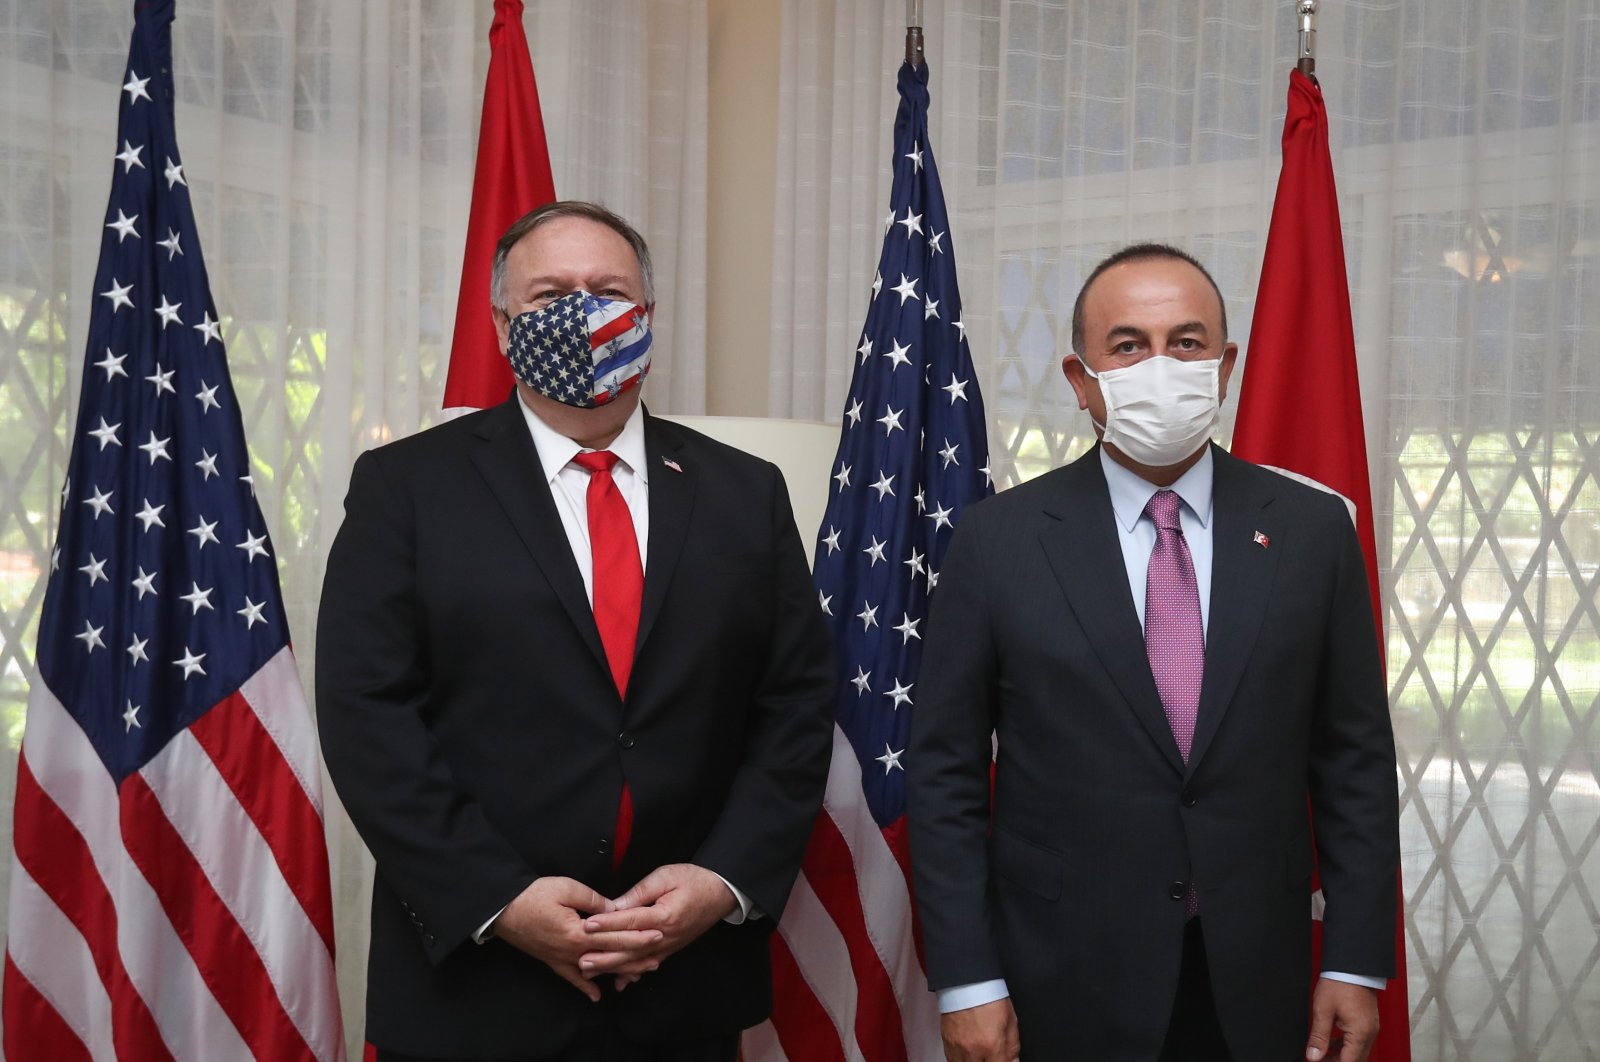 Turkey and U.S. discussed reducing tensions in the Eastern Mediterranean